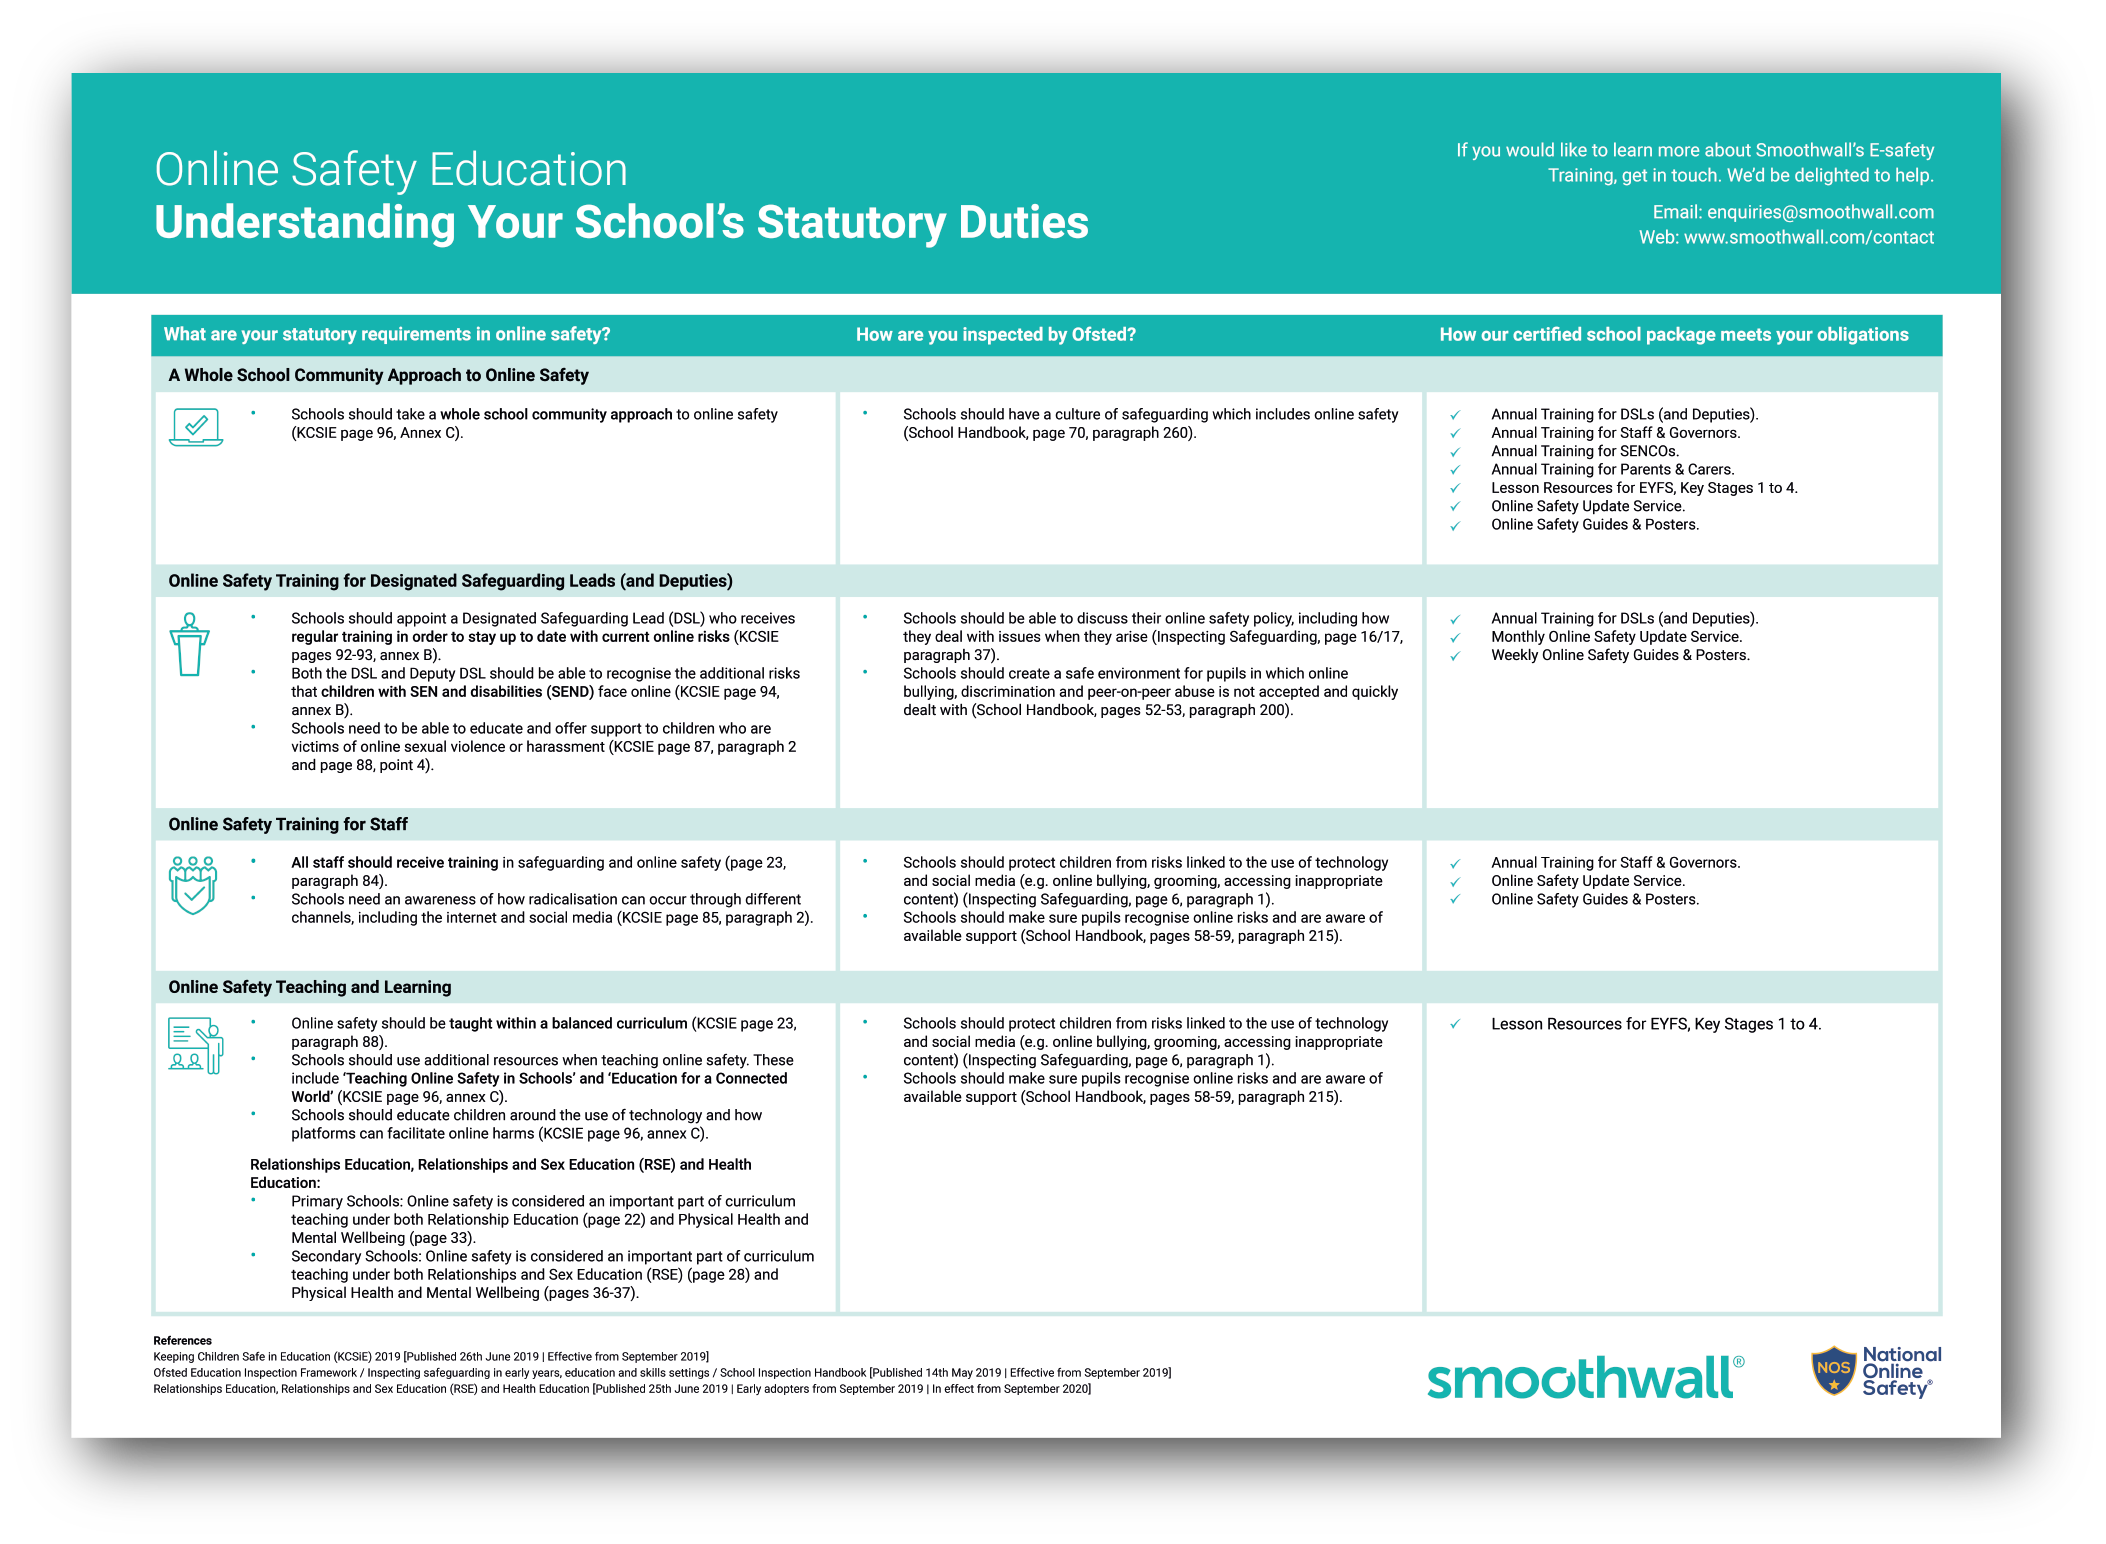 https://www.smoothwall.com/education/wp-content/uploads/sites/3/2019/11/Online-safety-education-Understanding-your-schools-statutory-guidance-image.png